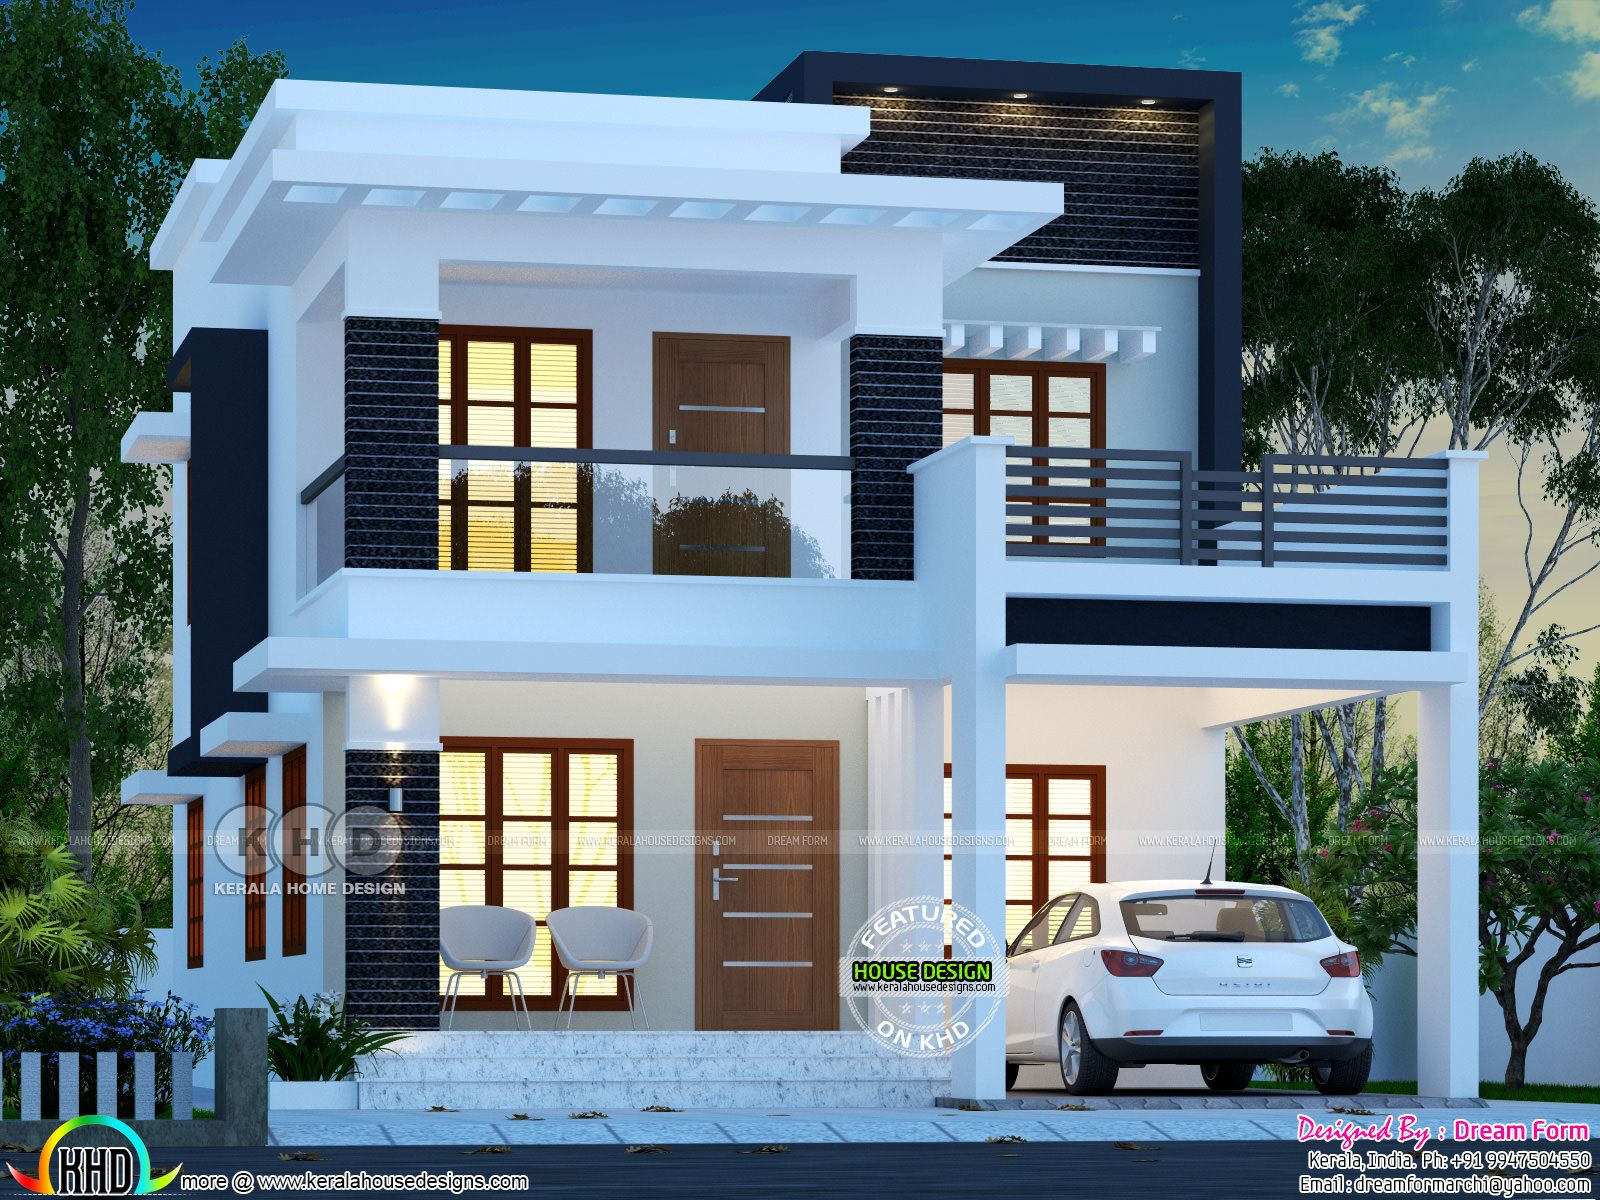 25 Lakhs Cost Estimated Double Storied Home In 2020 2 Storey House Design Kerala House Design Duplex House Design